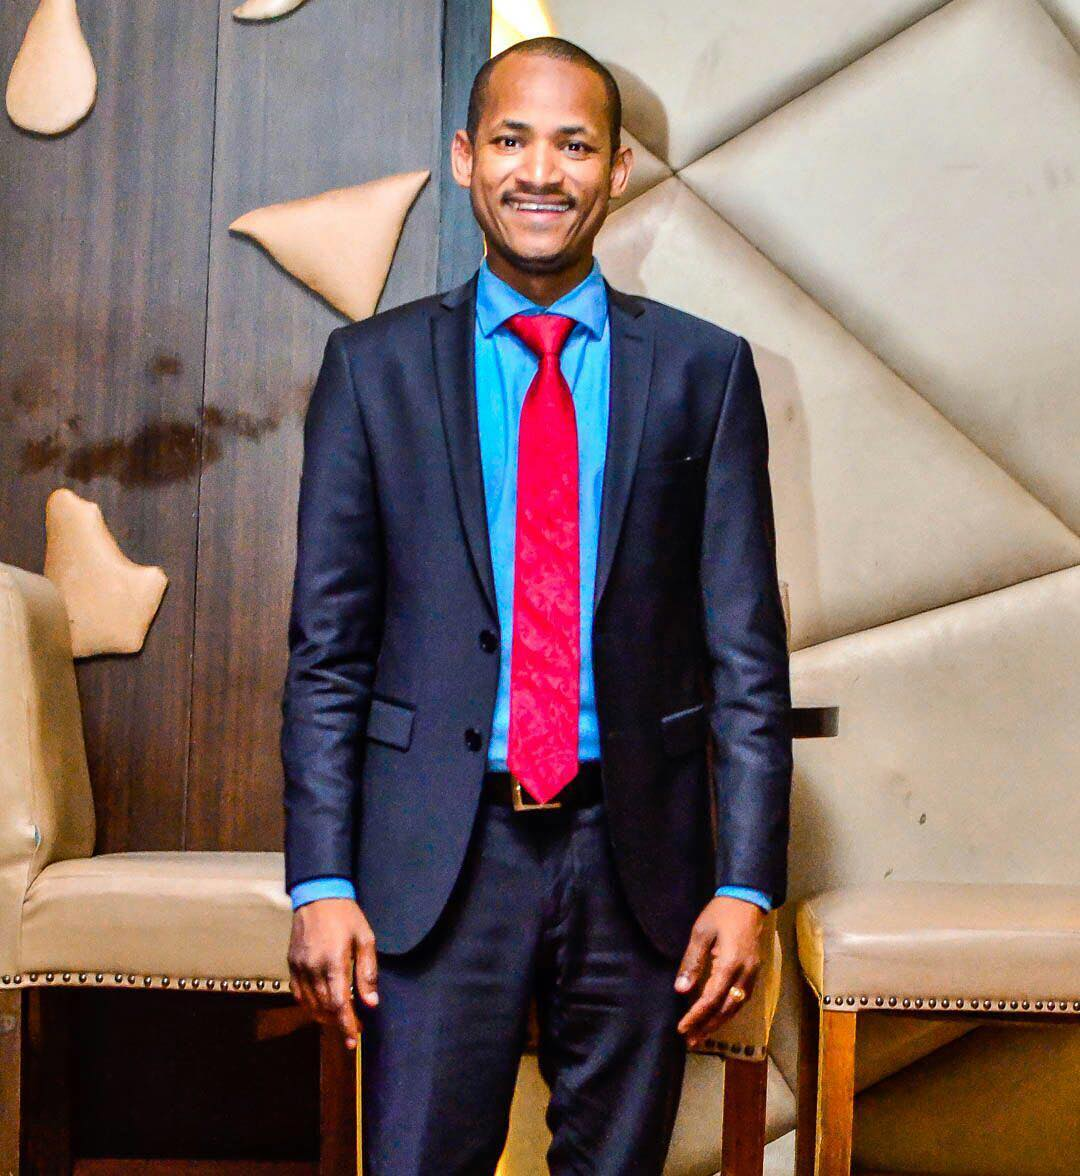 29739444 770083749853470 5627838438431522816 n - Babu Owino told to use civilised language or be chased away from TV interview